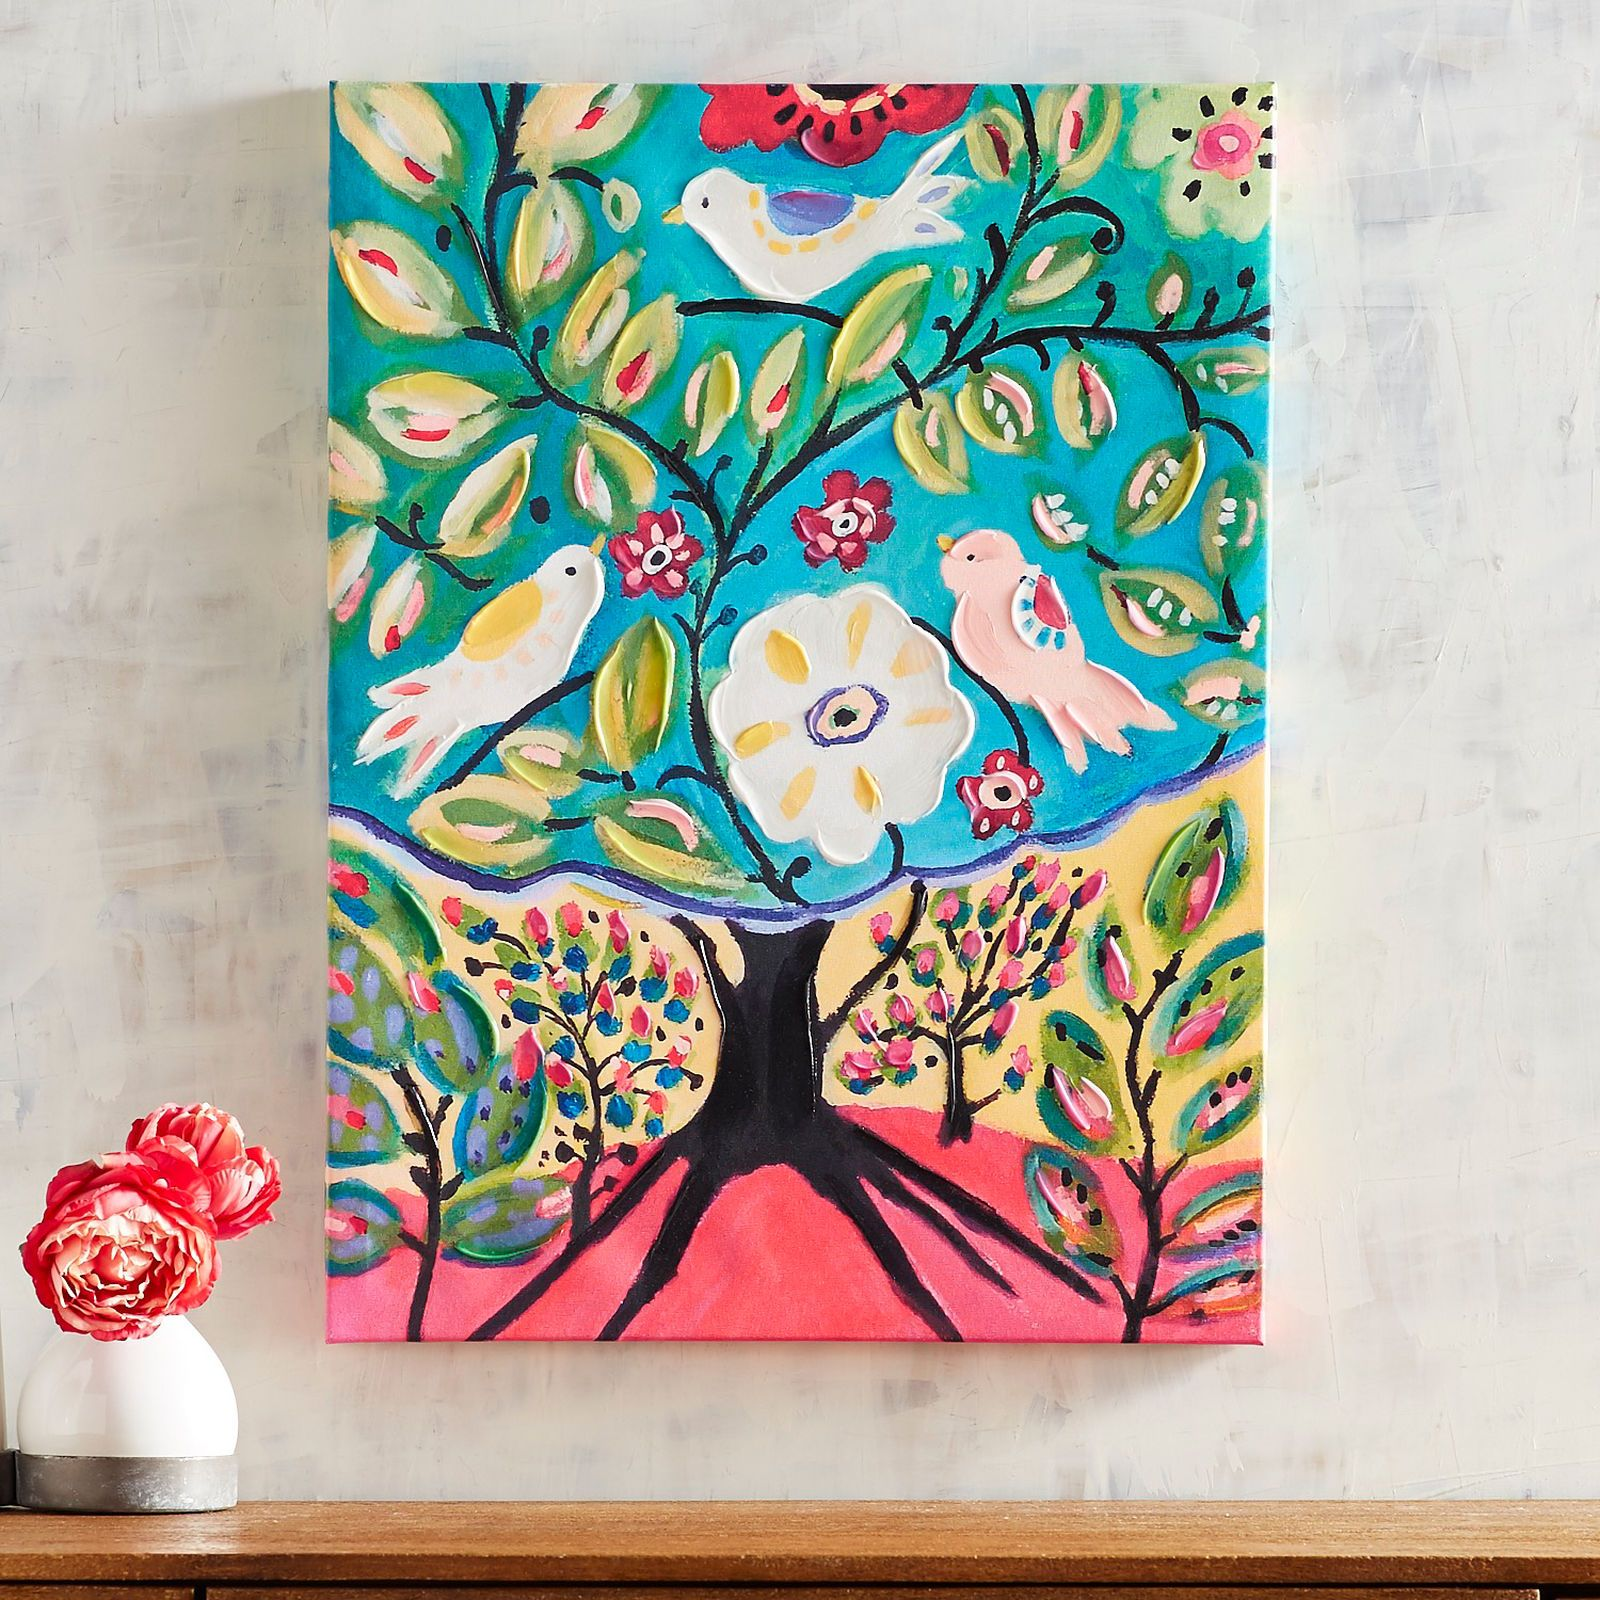 Folksy Tree With Birds Art - Pier 1 Imports